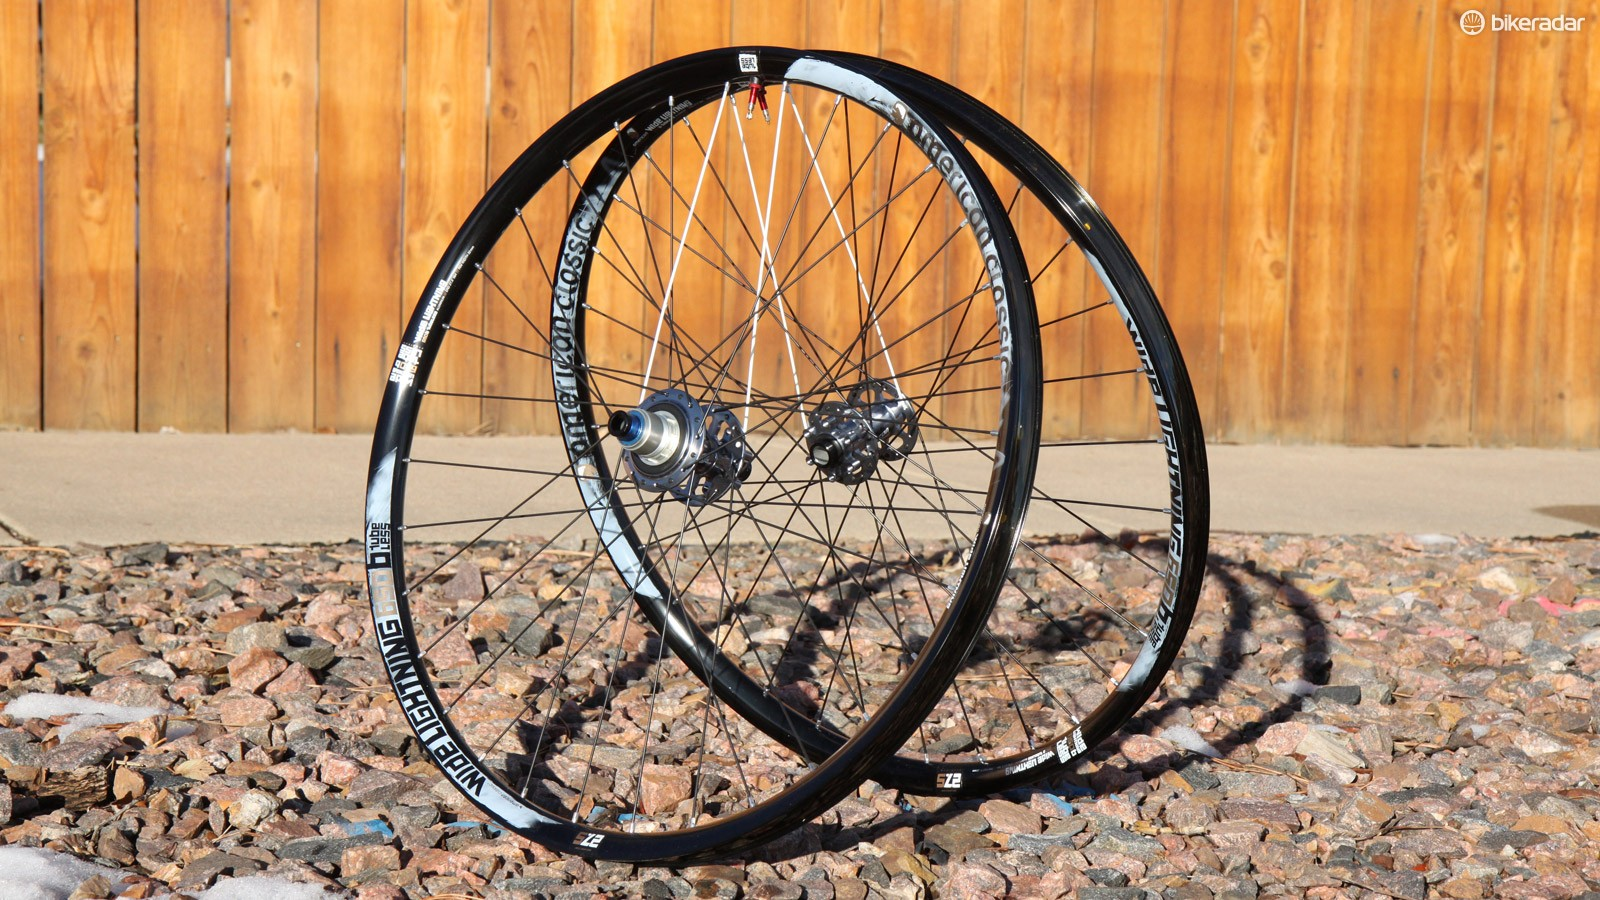 The American Classic Wide Lightning 27.5 Tubeless wheelset offers an enticing blend of generously proportioned 29.3mm internal rim widths and a sub-1,500g actual weight for the pair - all with aluminum rims